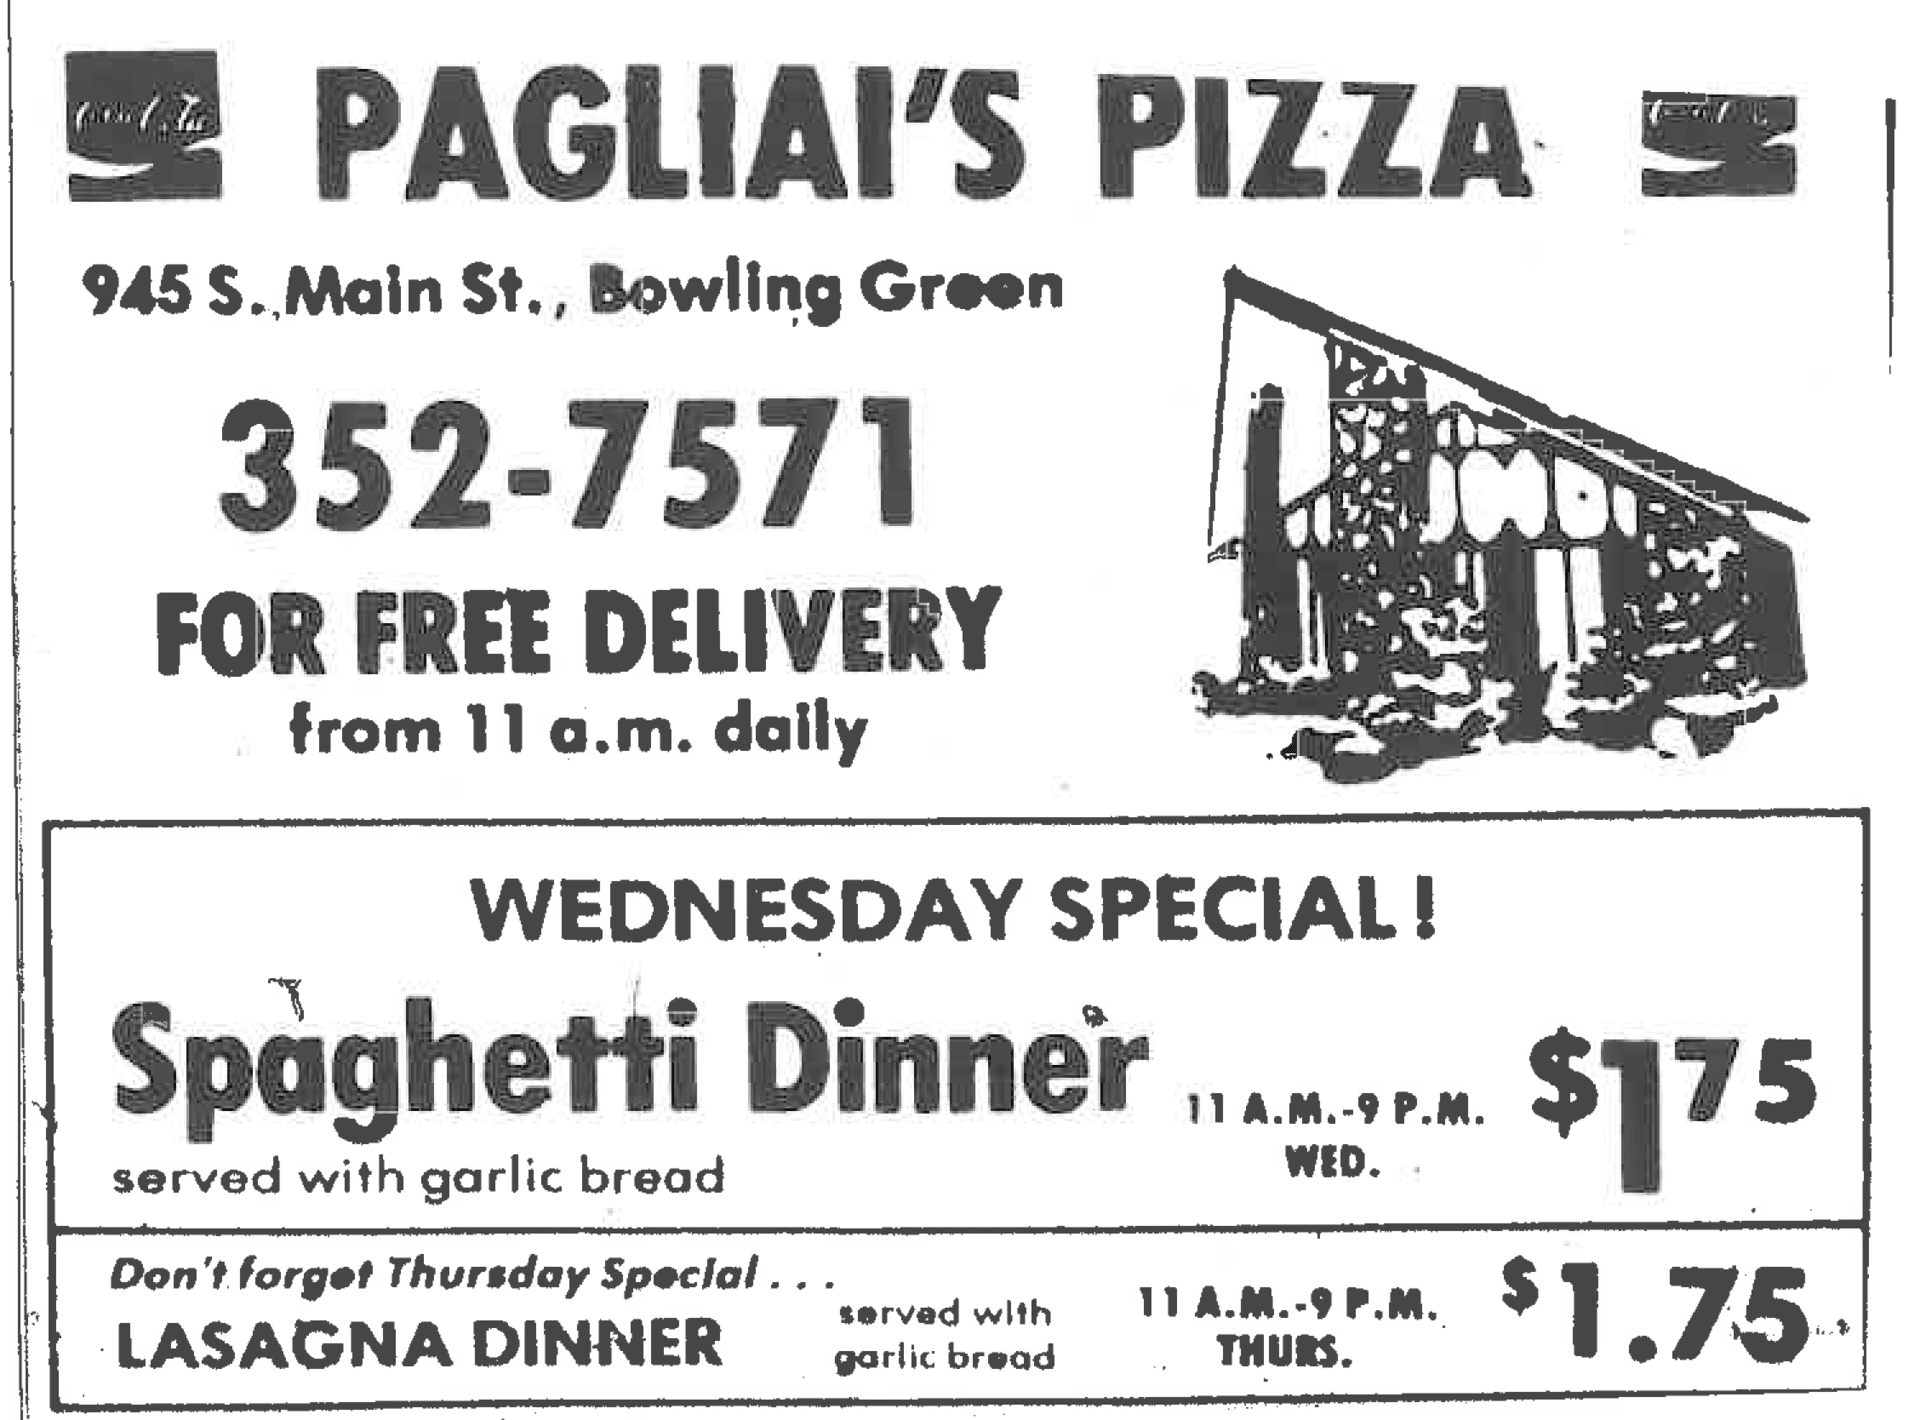 Pagliais Pizza Coupons And Specials Bowling Green Oh